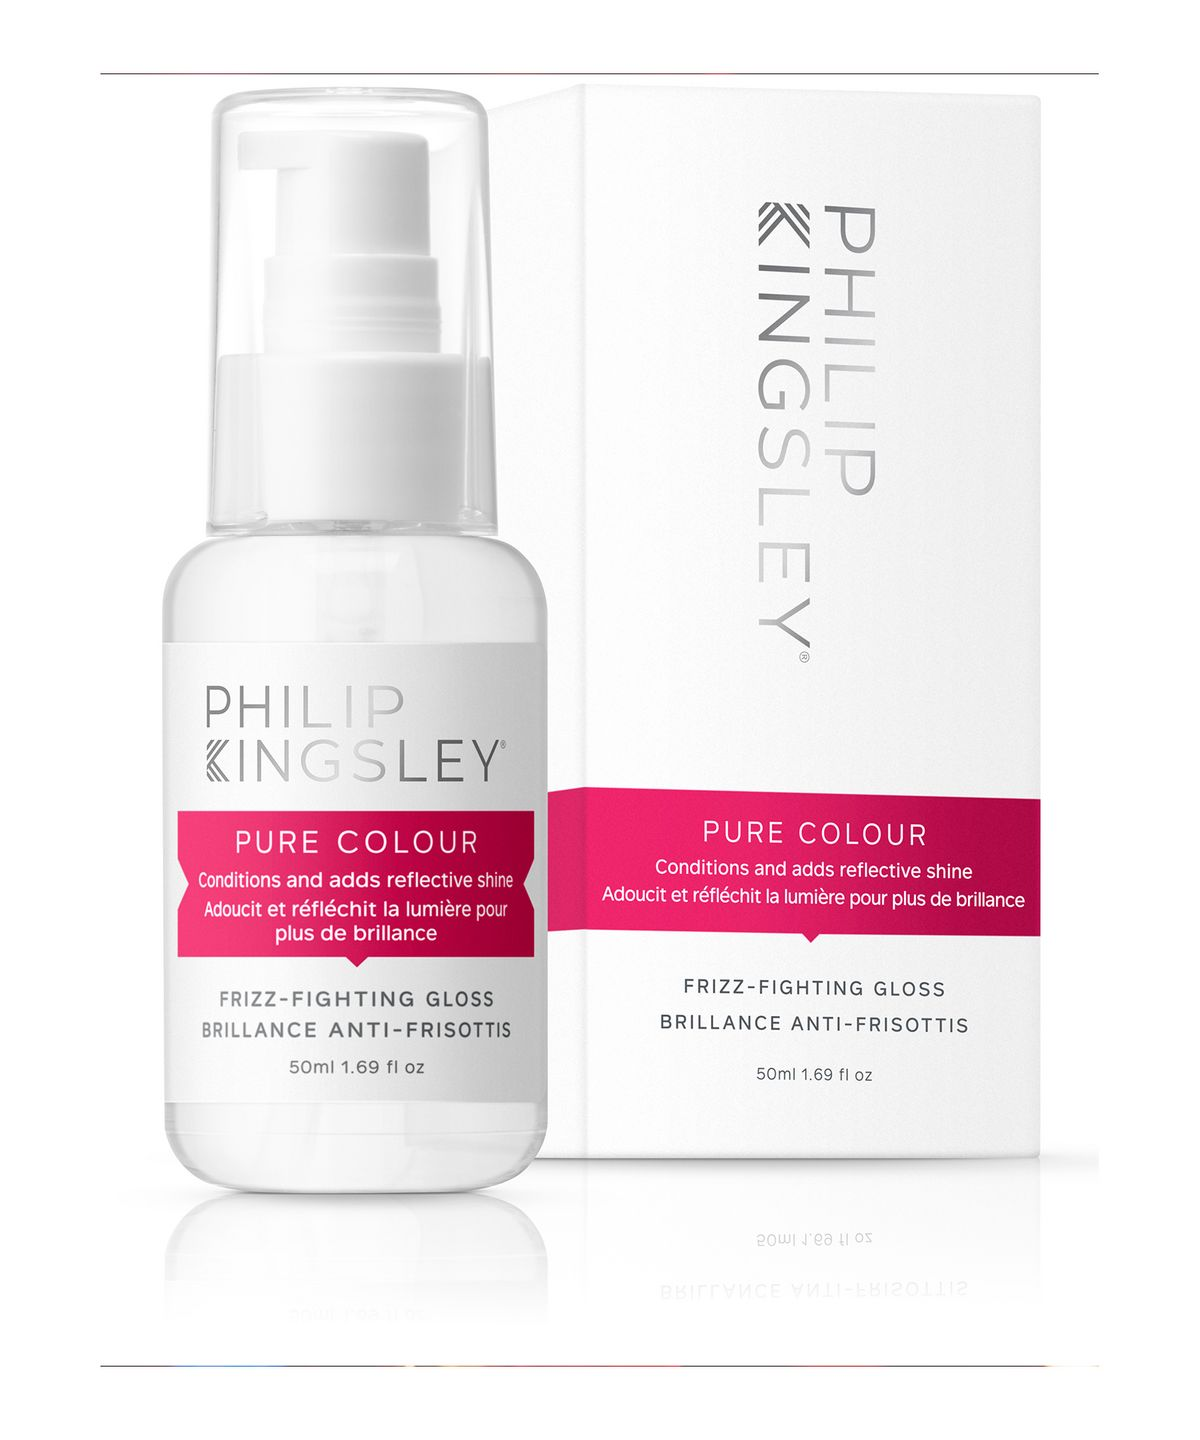 Philip Kingsley Pure Colour Frizz Fighting Gloss